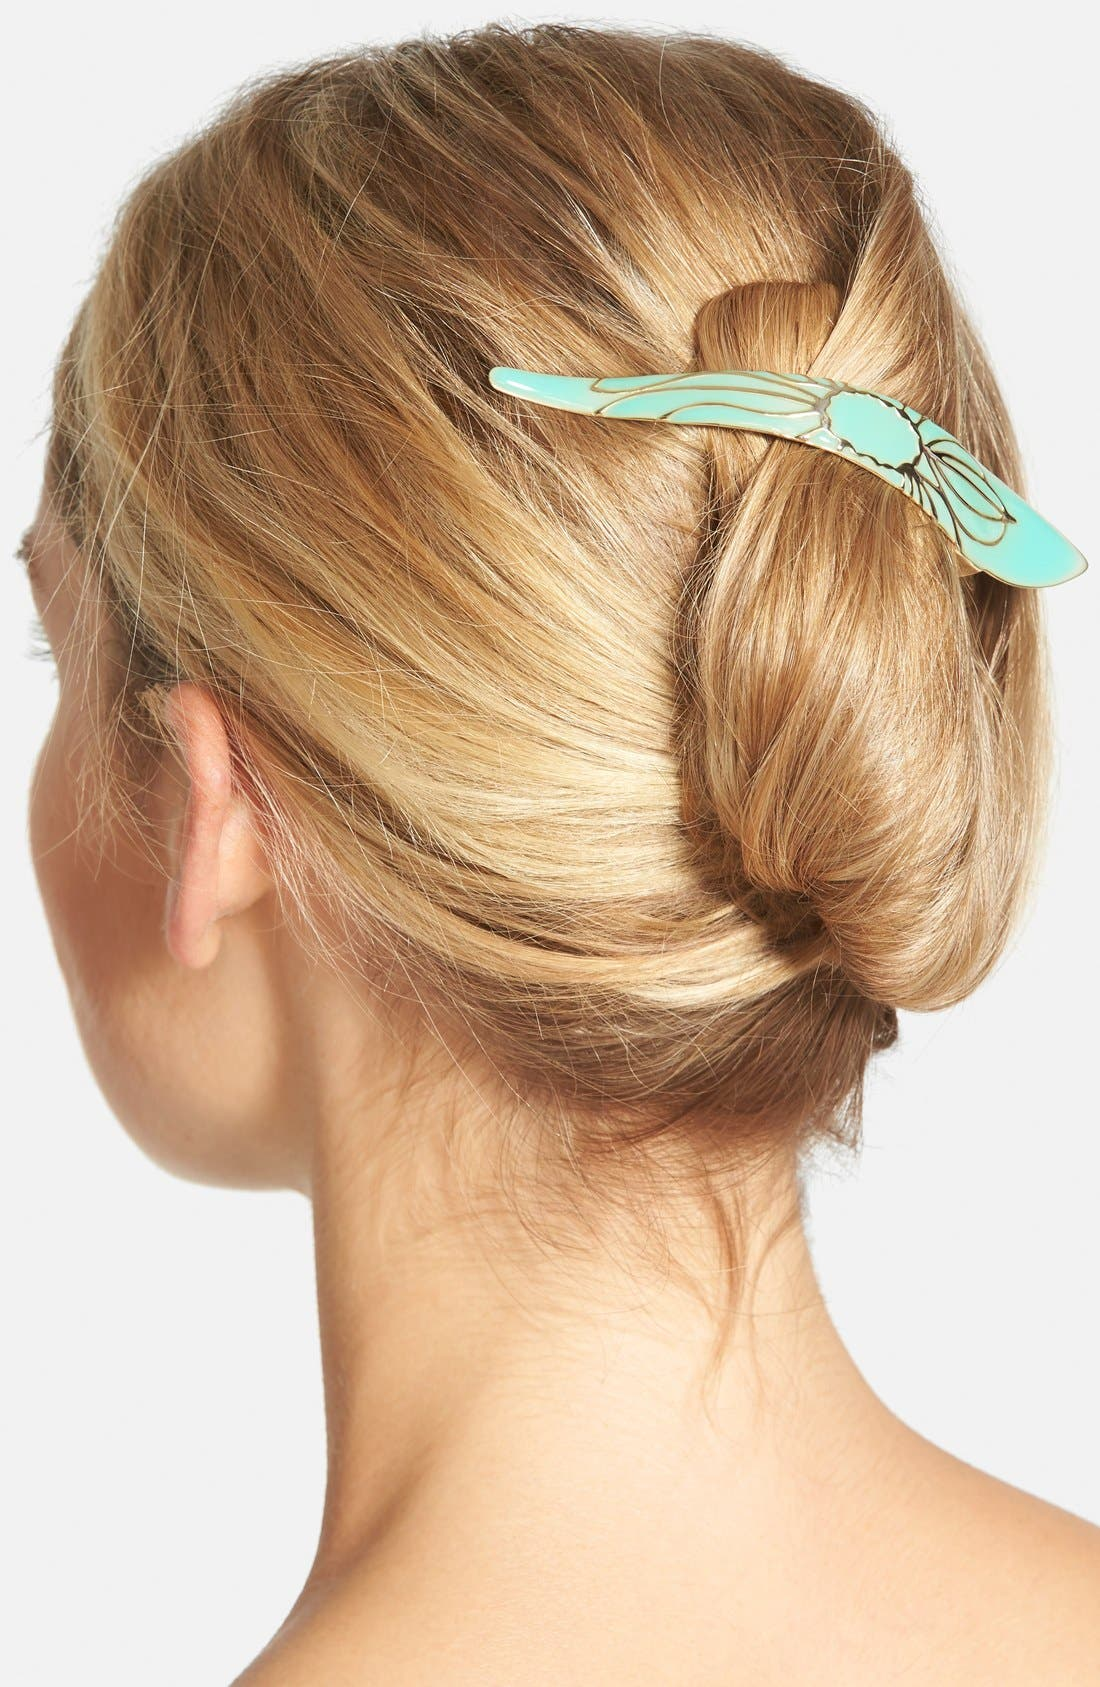 FICCARE Maximus Lotus Hair Clip